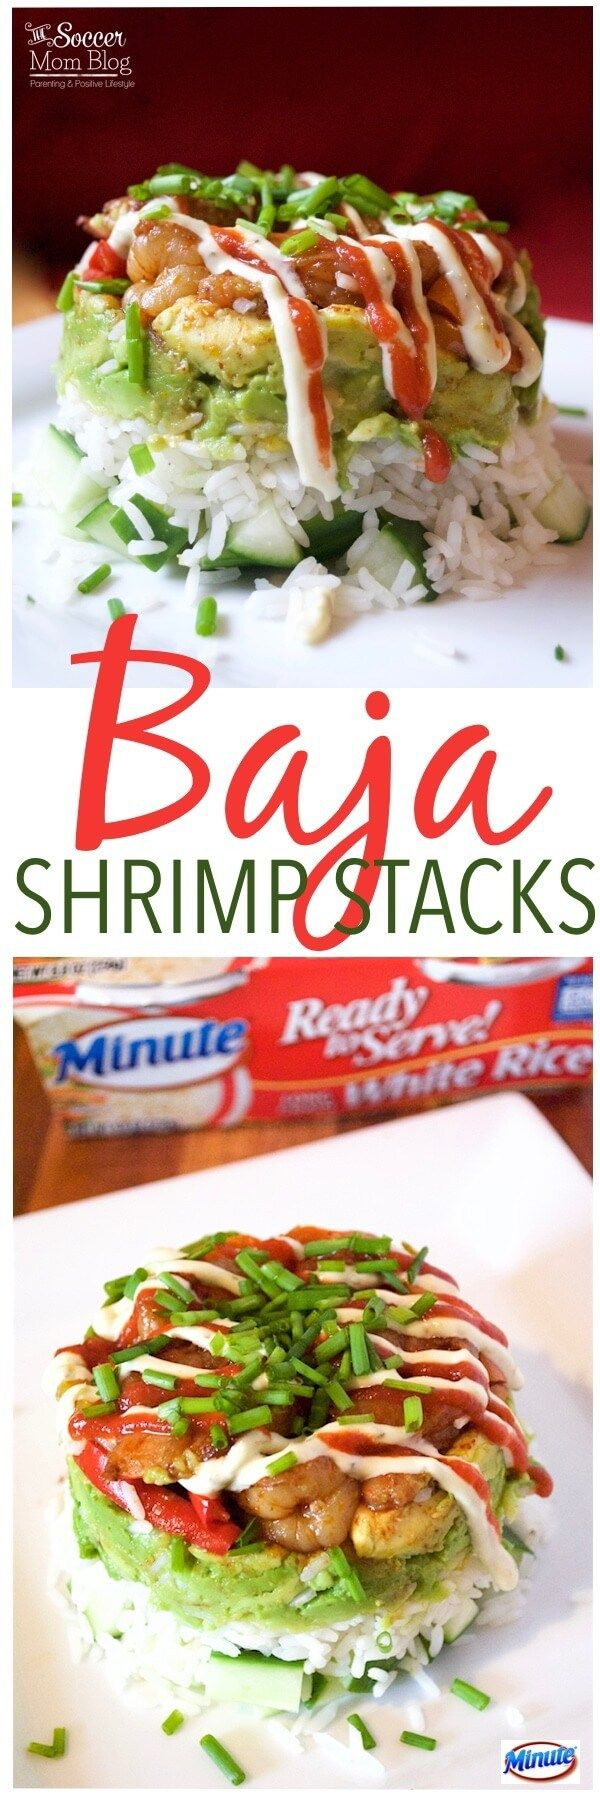 This is one of those recipes that will really WOW 'em!! These Baja Shrimp Stacks are zesty, healthy, and super impressive! (But actually easy to make!) MixinMinute AD @minutericeUS